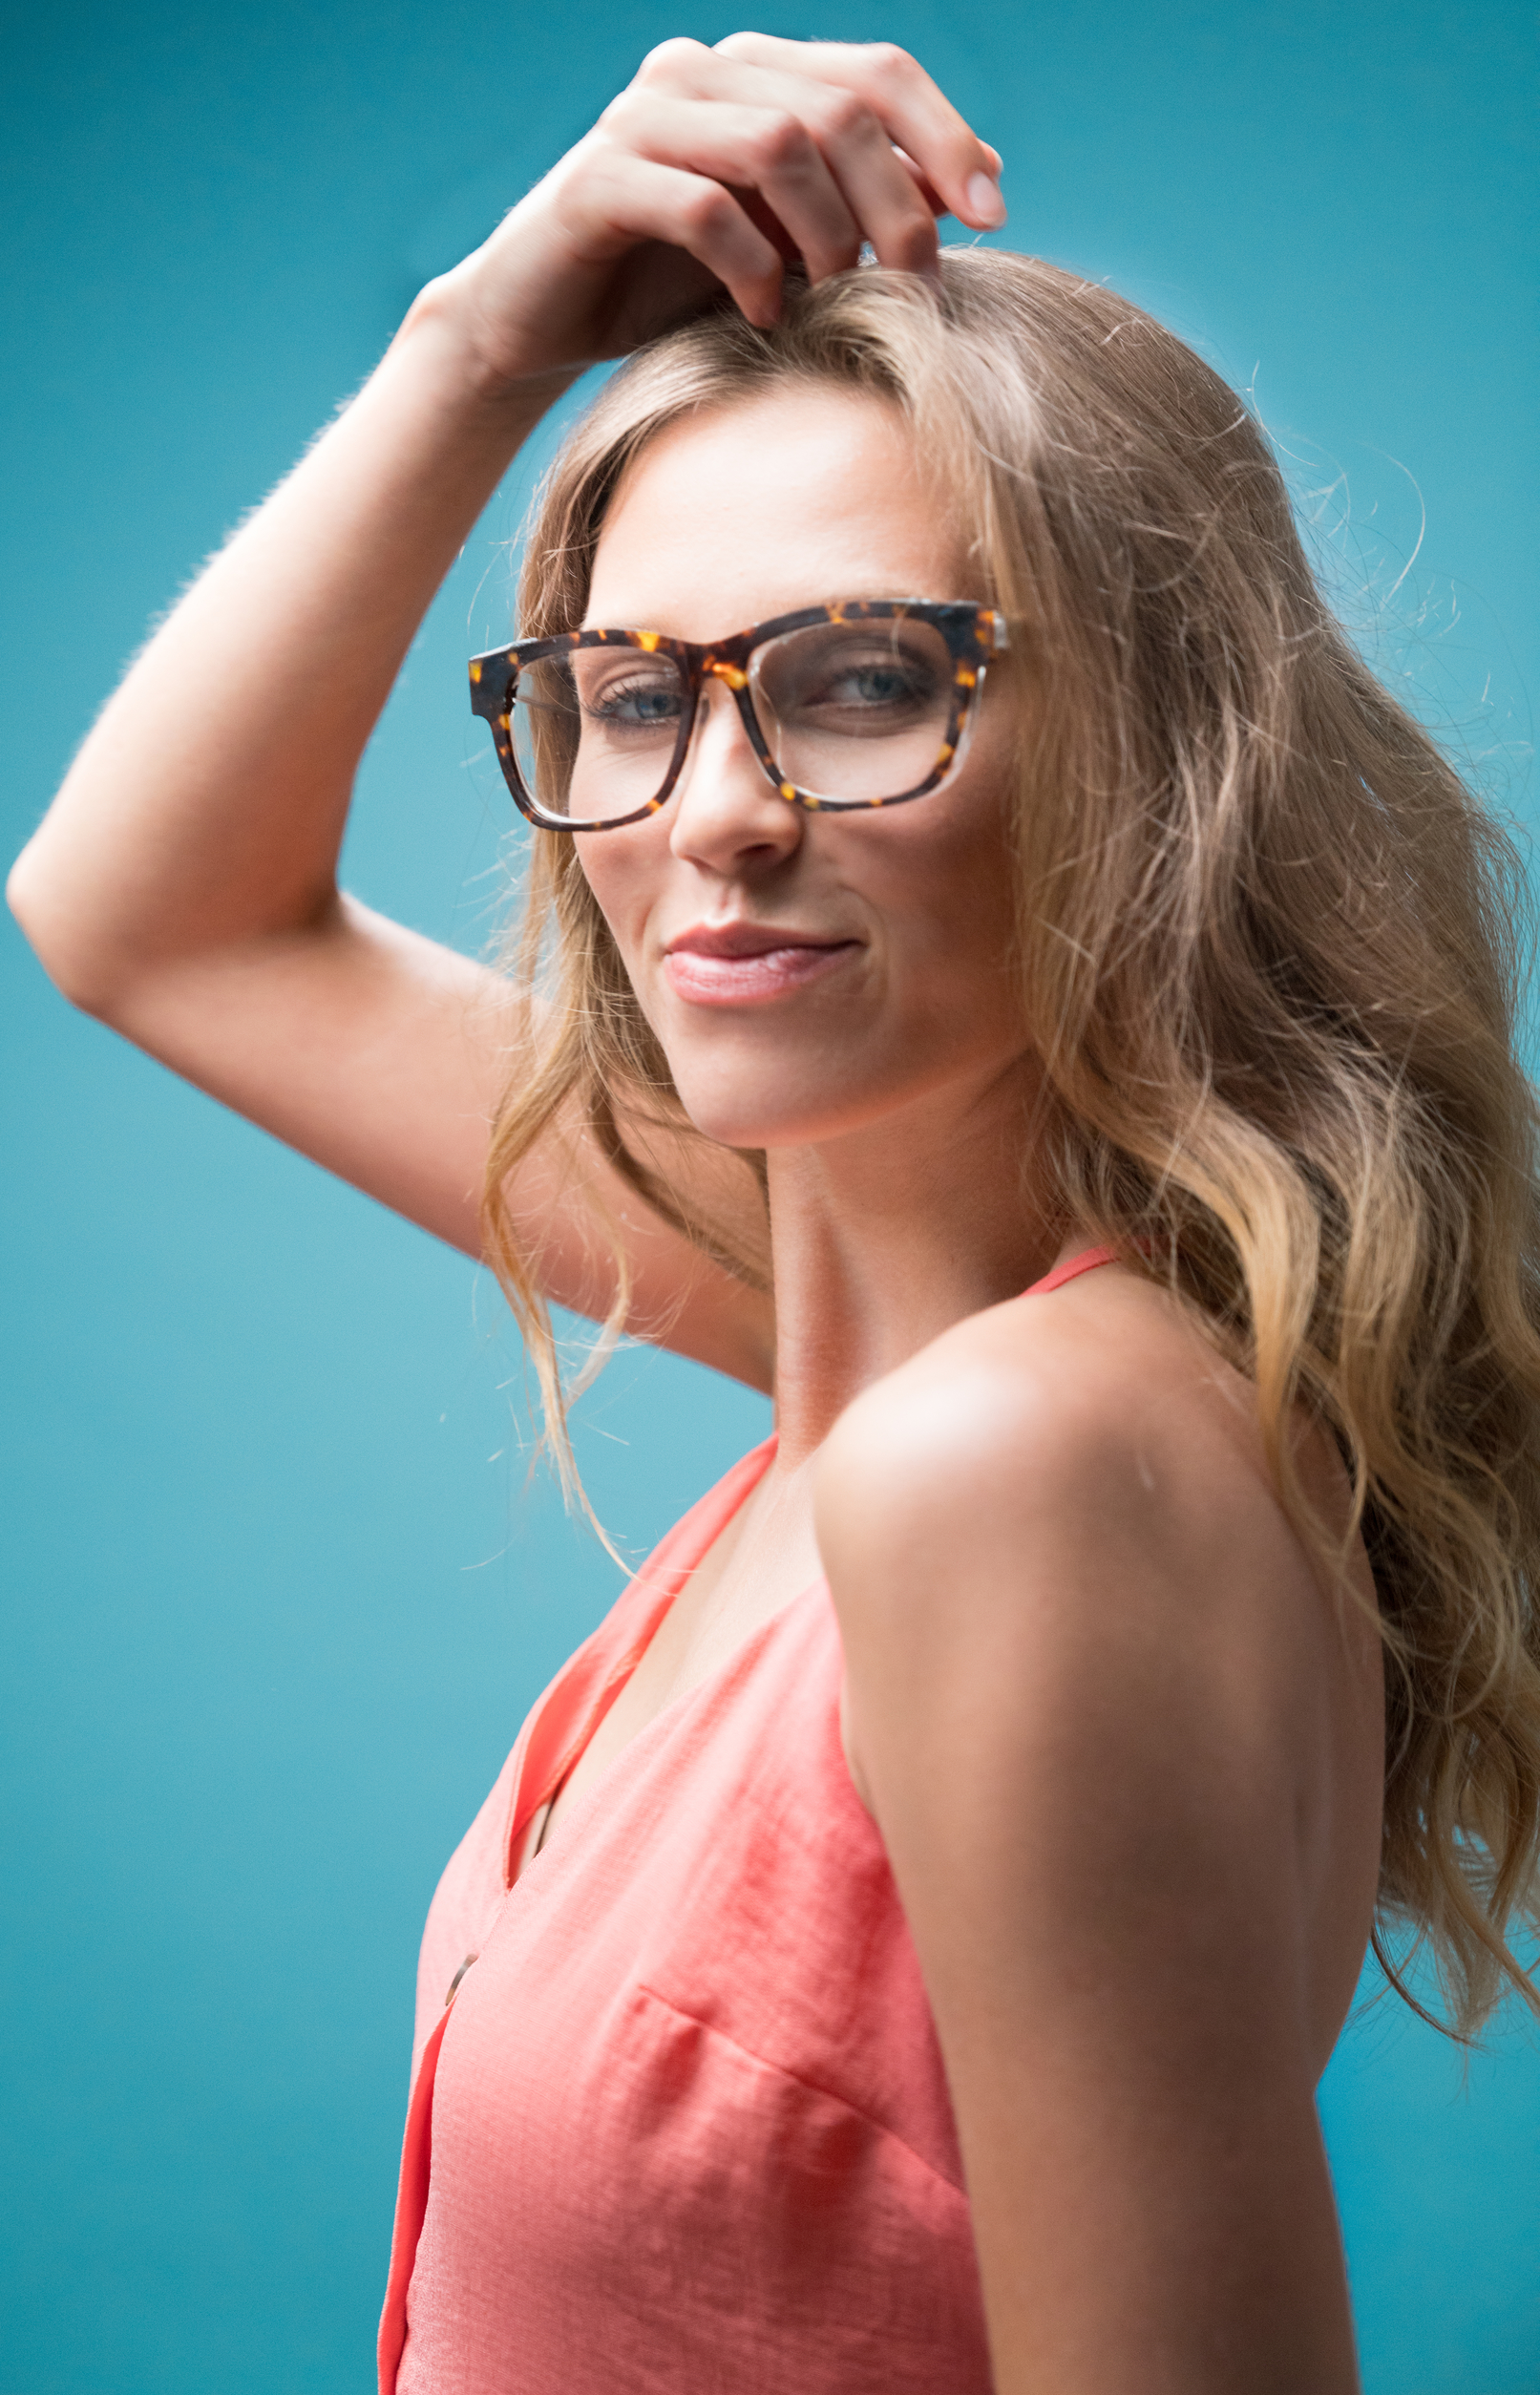 Take Control - Gilaasi's patent pending Finetunes are the world's first pair of fashionable glasses that you can adjust between glasses and sunglasses with just a tap of the frame. Tap right for sunglasses, tap left for glasses.Practical and stylish glasses wearers shouldn't have to carry prescription sunglasses to switch into when the sun shines. They also shouldn't have to rely on the alternative of photochromic lenses which are slow to react and offer you no control.With Finetunes you won't have to deal with any of that. You control the transition from glasses to sunglasses with speed and simplicity.Take control today and get notified at launch.